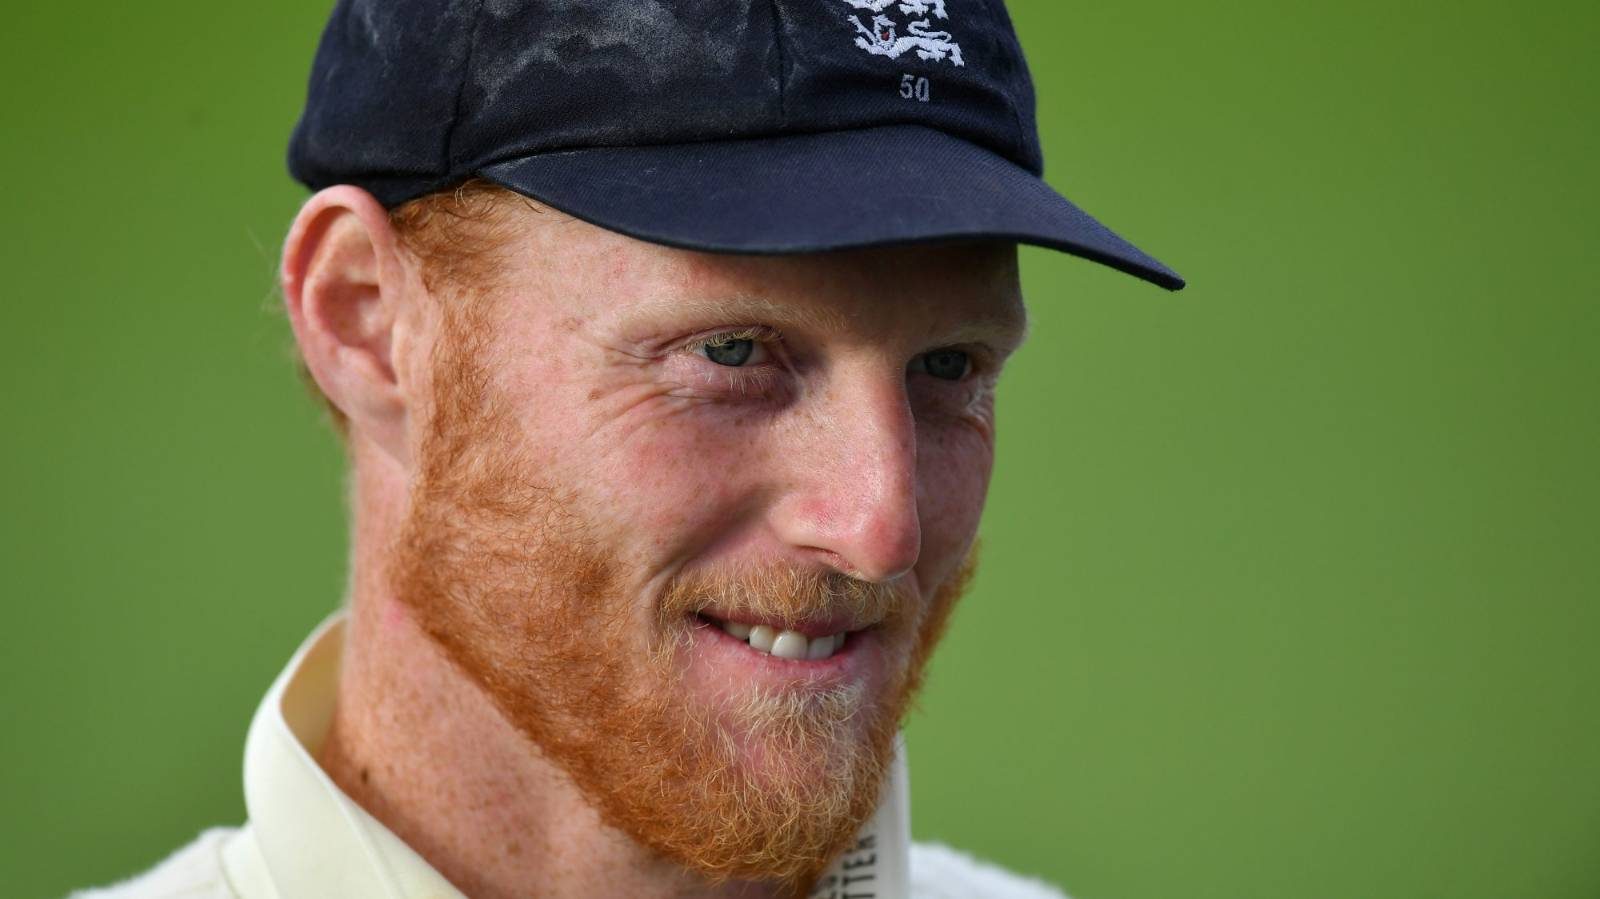 'I'm ready for Australia': Ben Stokes cleared to play in Ashes series